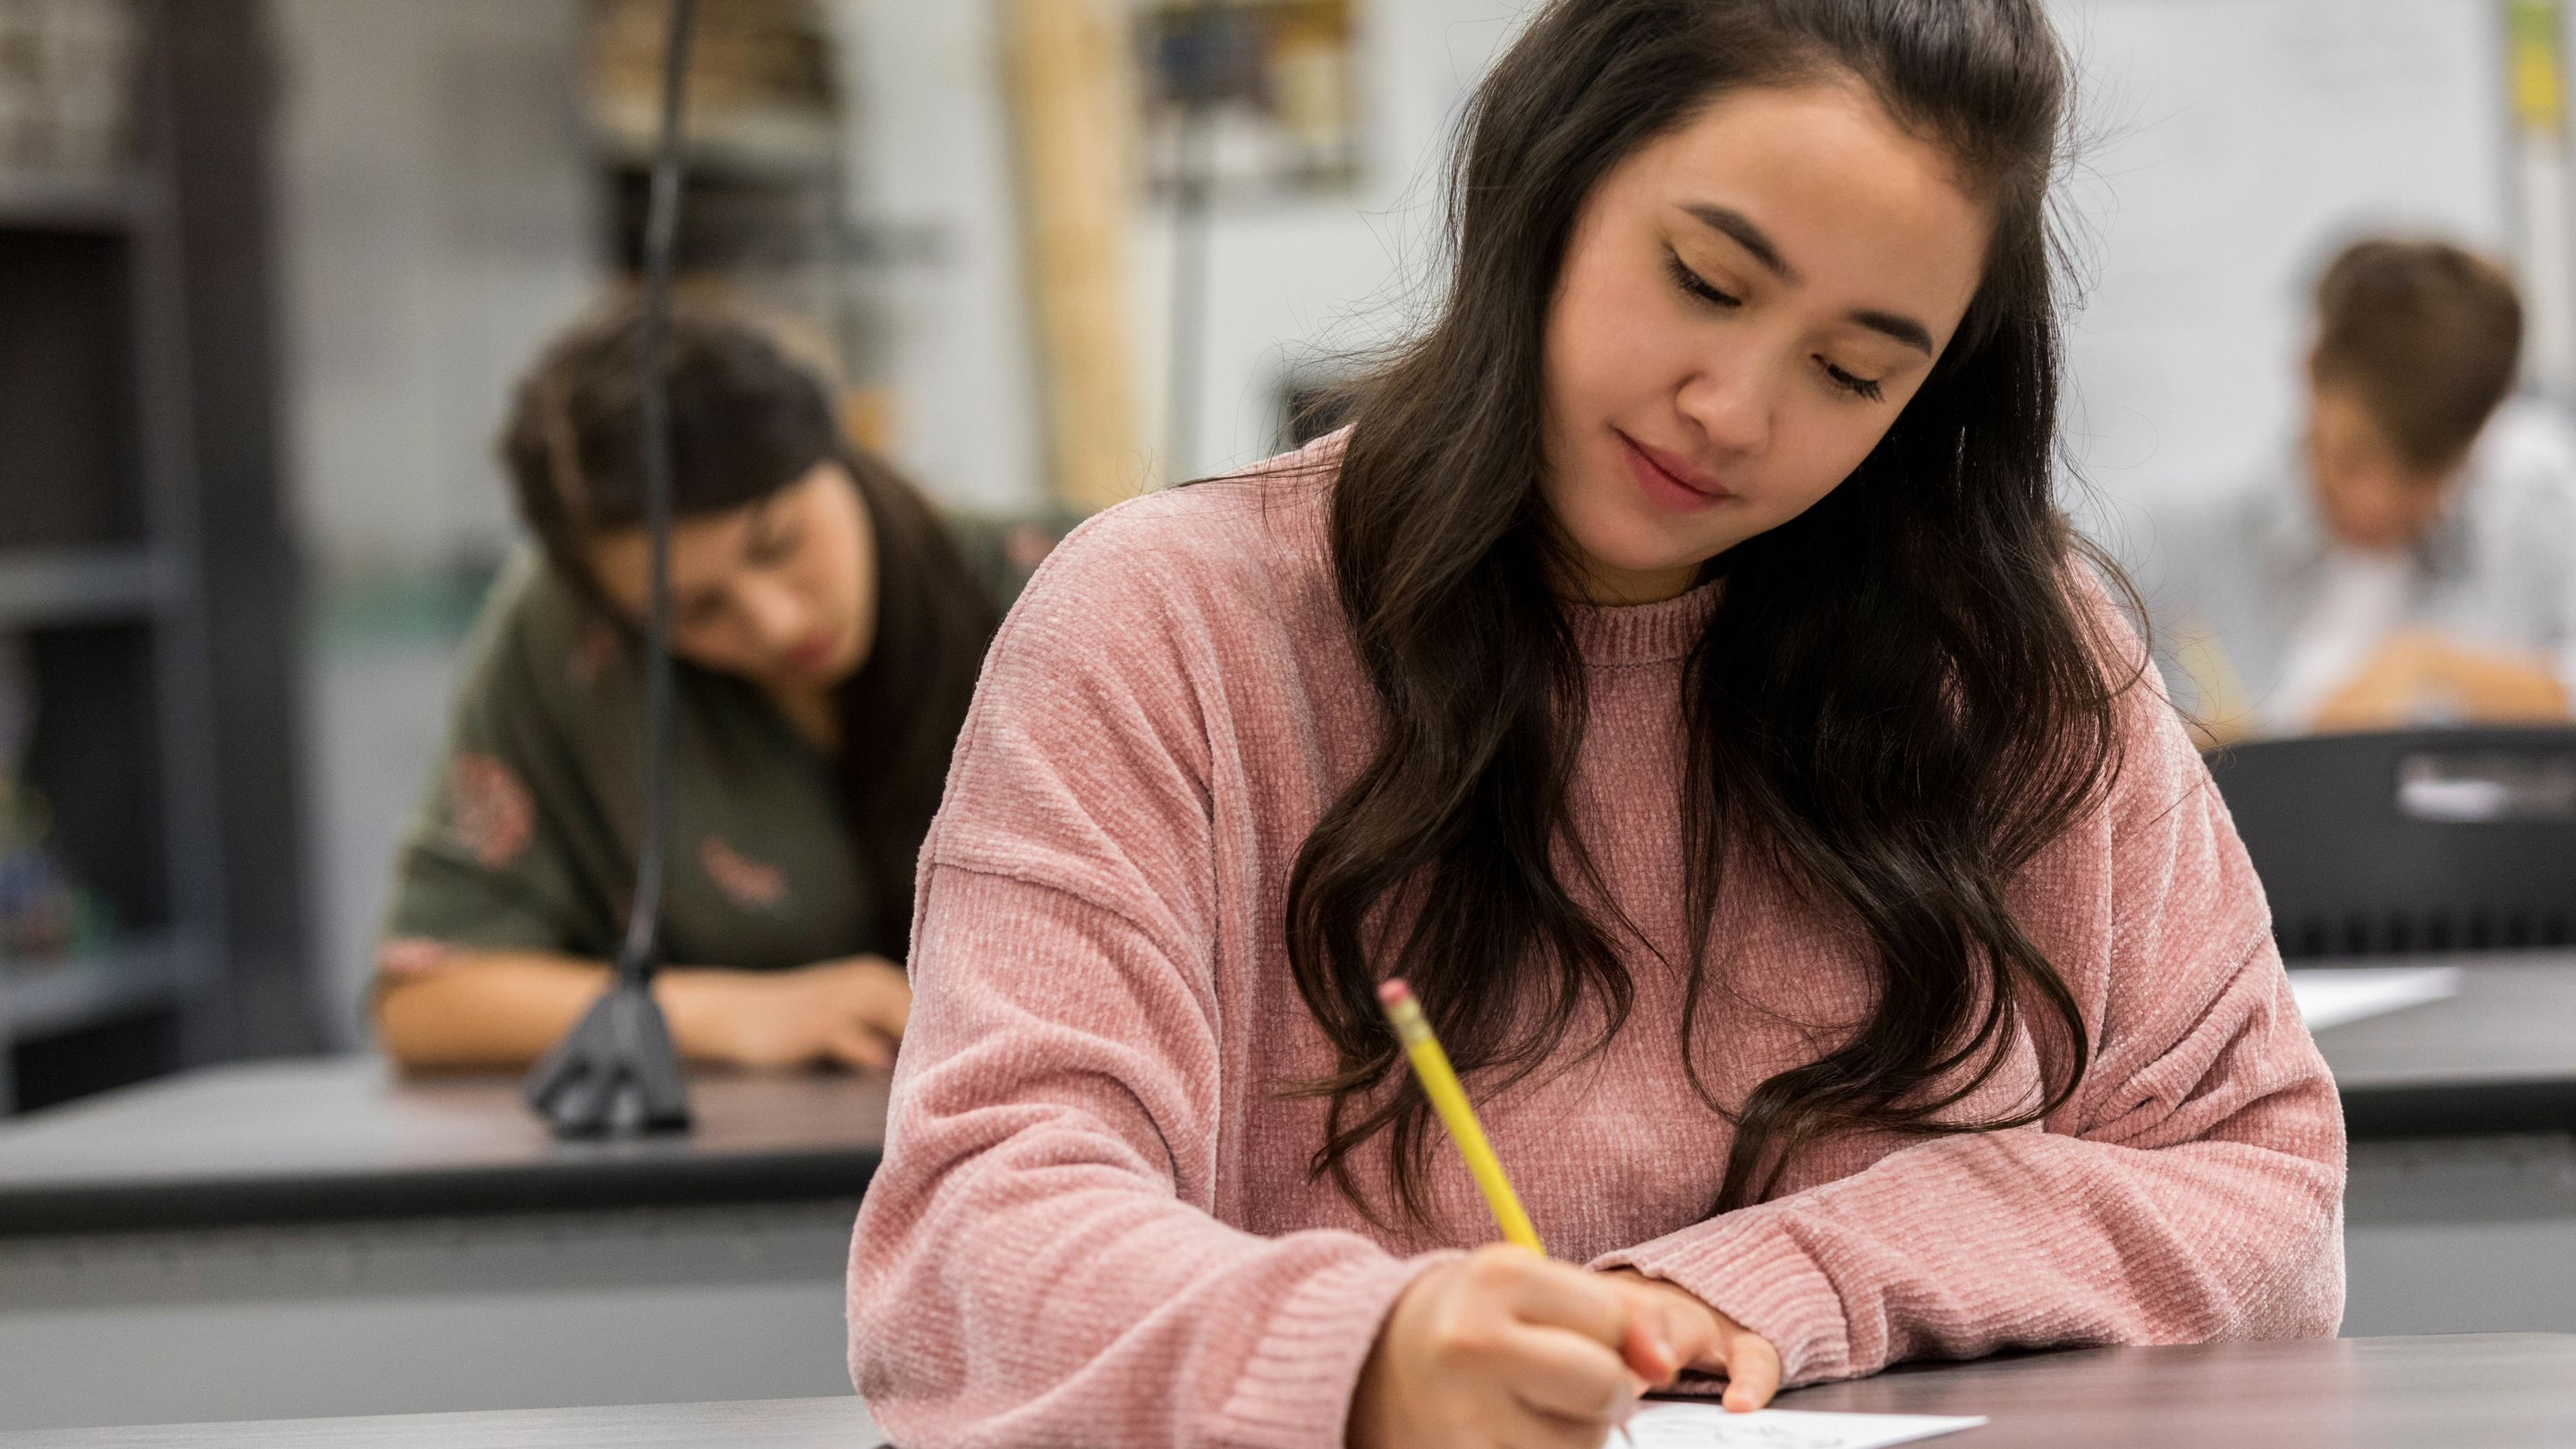 Overcoming Test Anxiety In High School